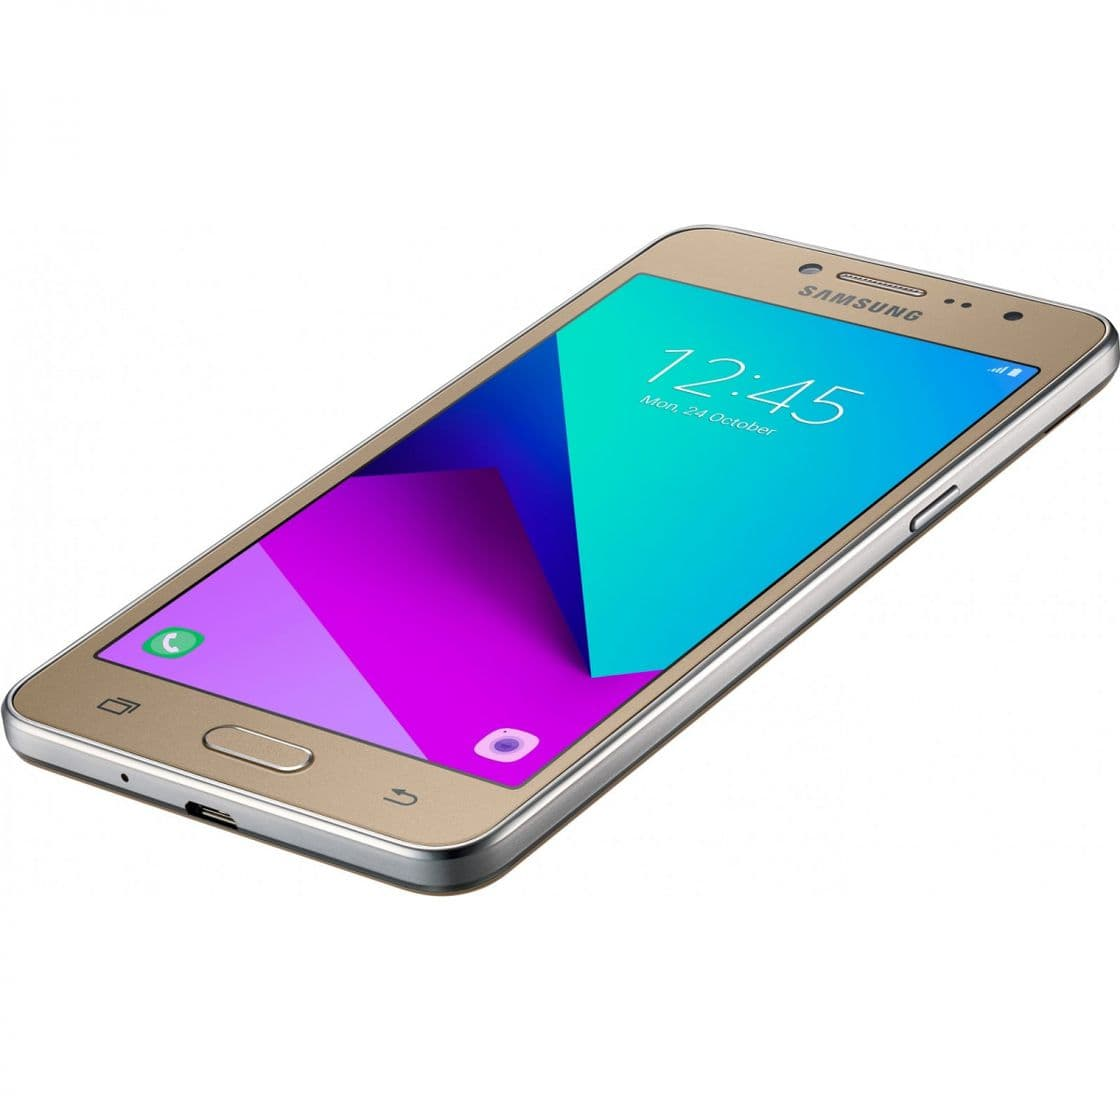 Samsung Galaxy J2 Prime Buy Smartphone Compare Prices In